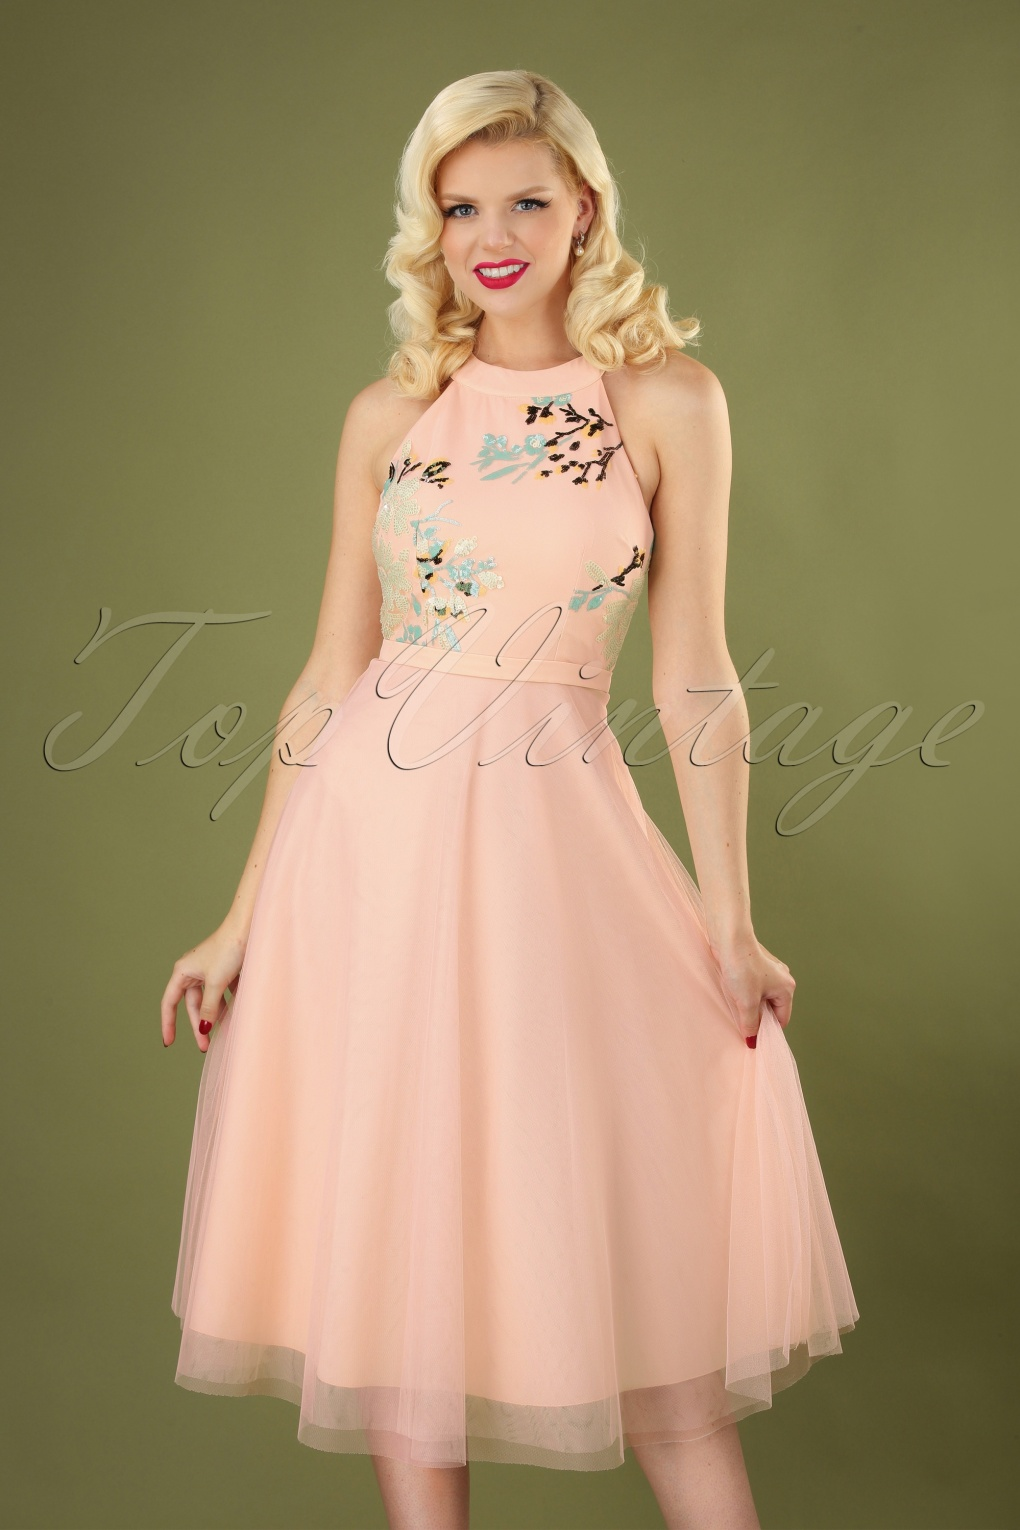 50s Dresses UK | 1950s Dresses, Shoes & Clothing Shops 50s Bea Tulle Midi Swing Dress in Blush £83.08 AT vintagedancer.com